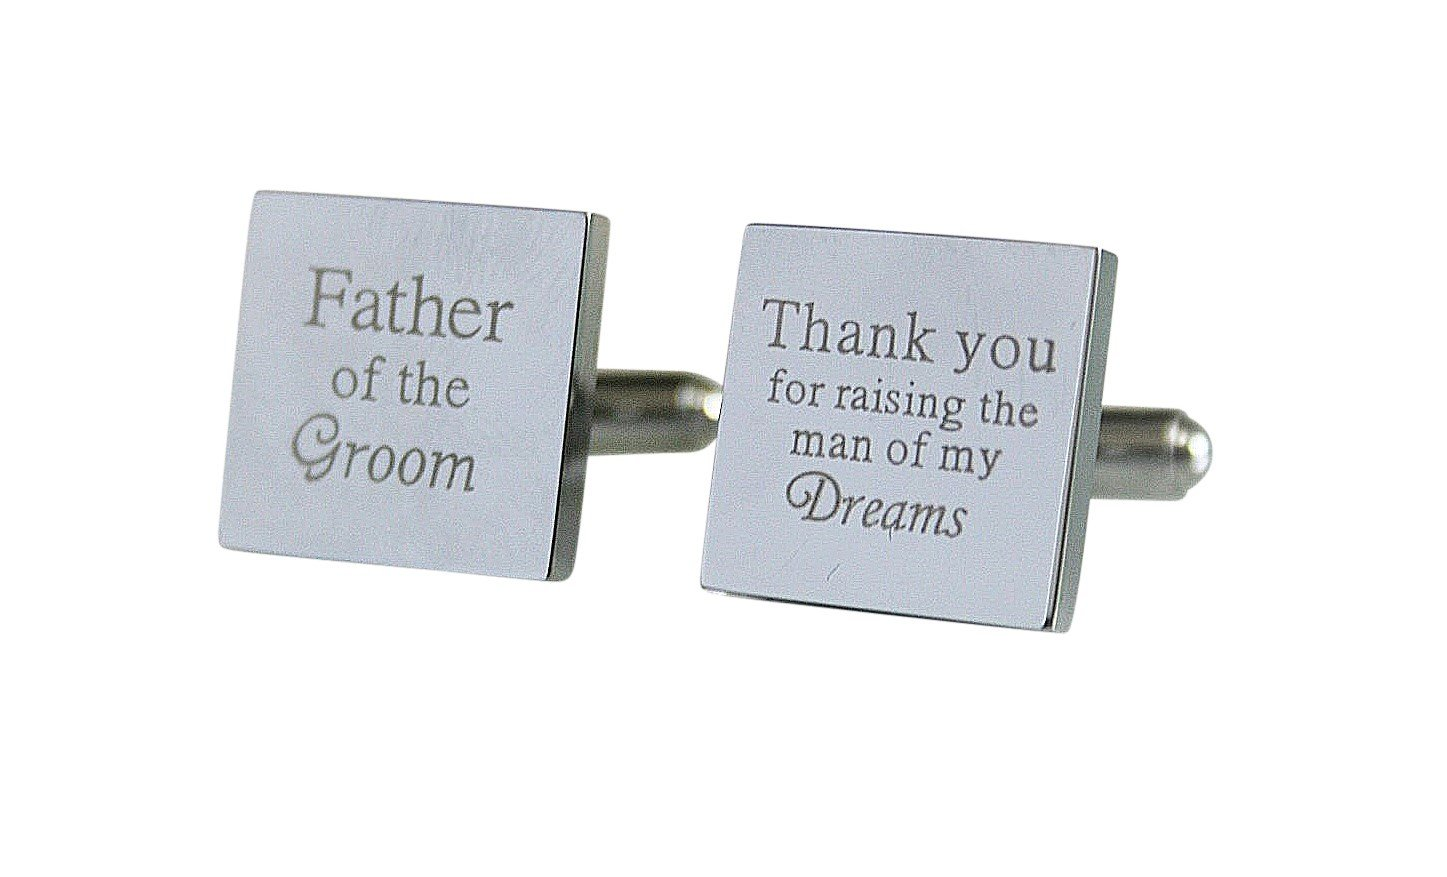 Father of the Groom Cuff links Stainless Steel Gifts for Dad Wedding Cufflinks Gift Fathers Day Gift (Father of the Groom)